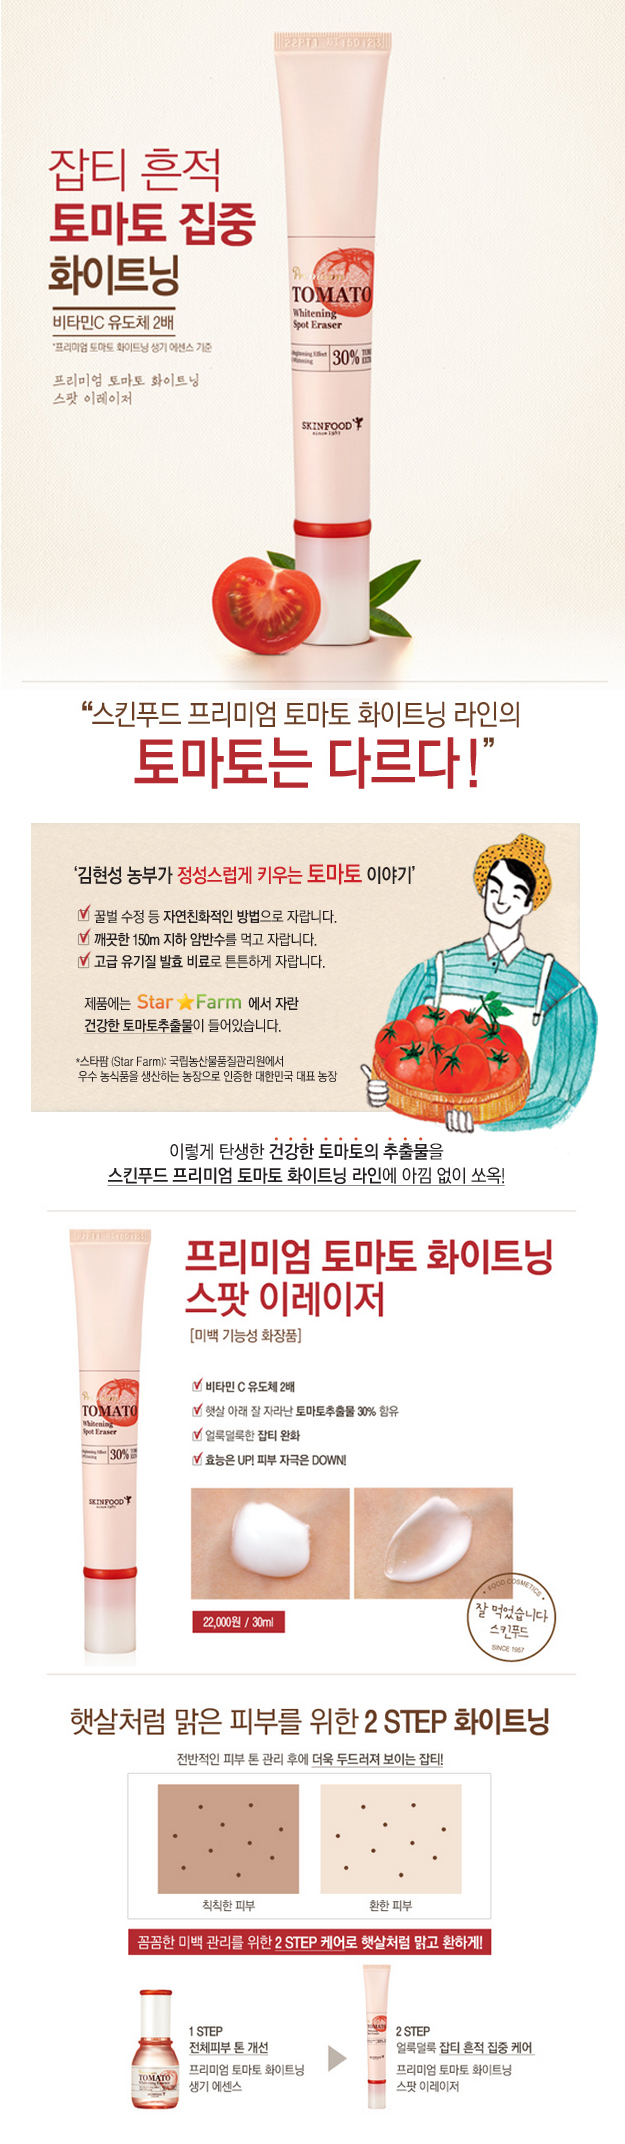 Credit: Skinfood Korea website